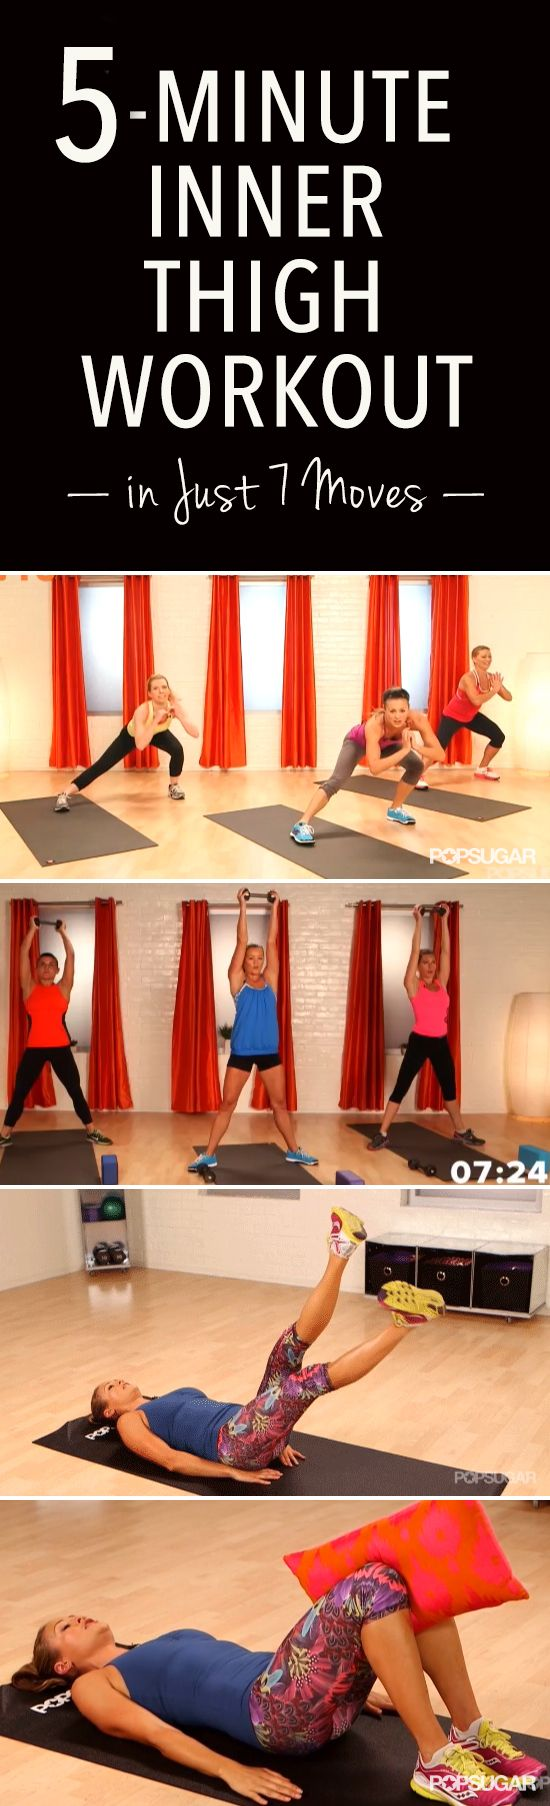 A 5-Minute Workout For Slimmer Inner Thighs - in GIFS!